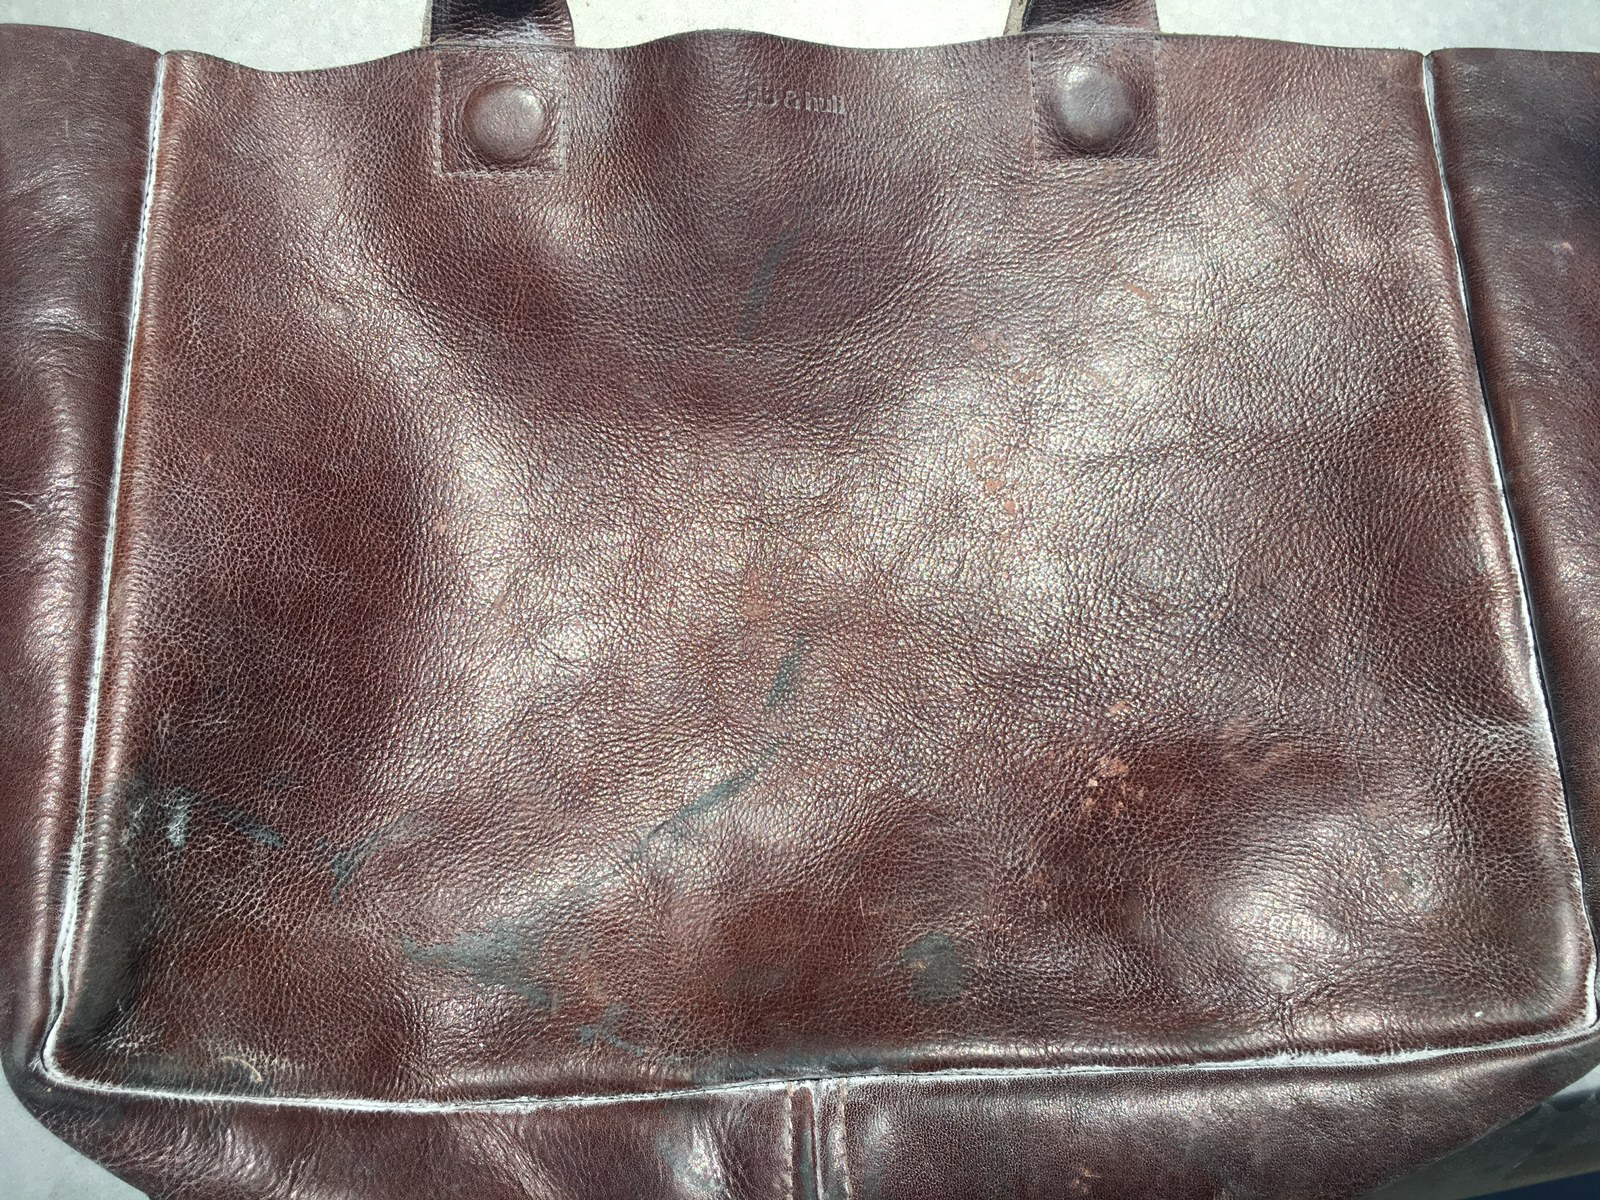 handbag-before